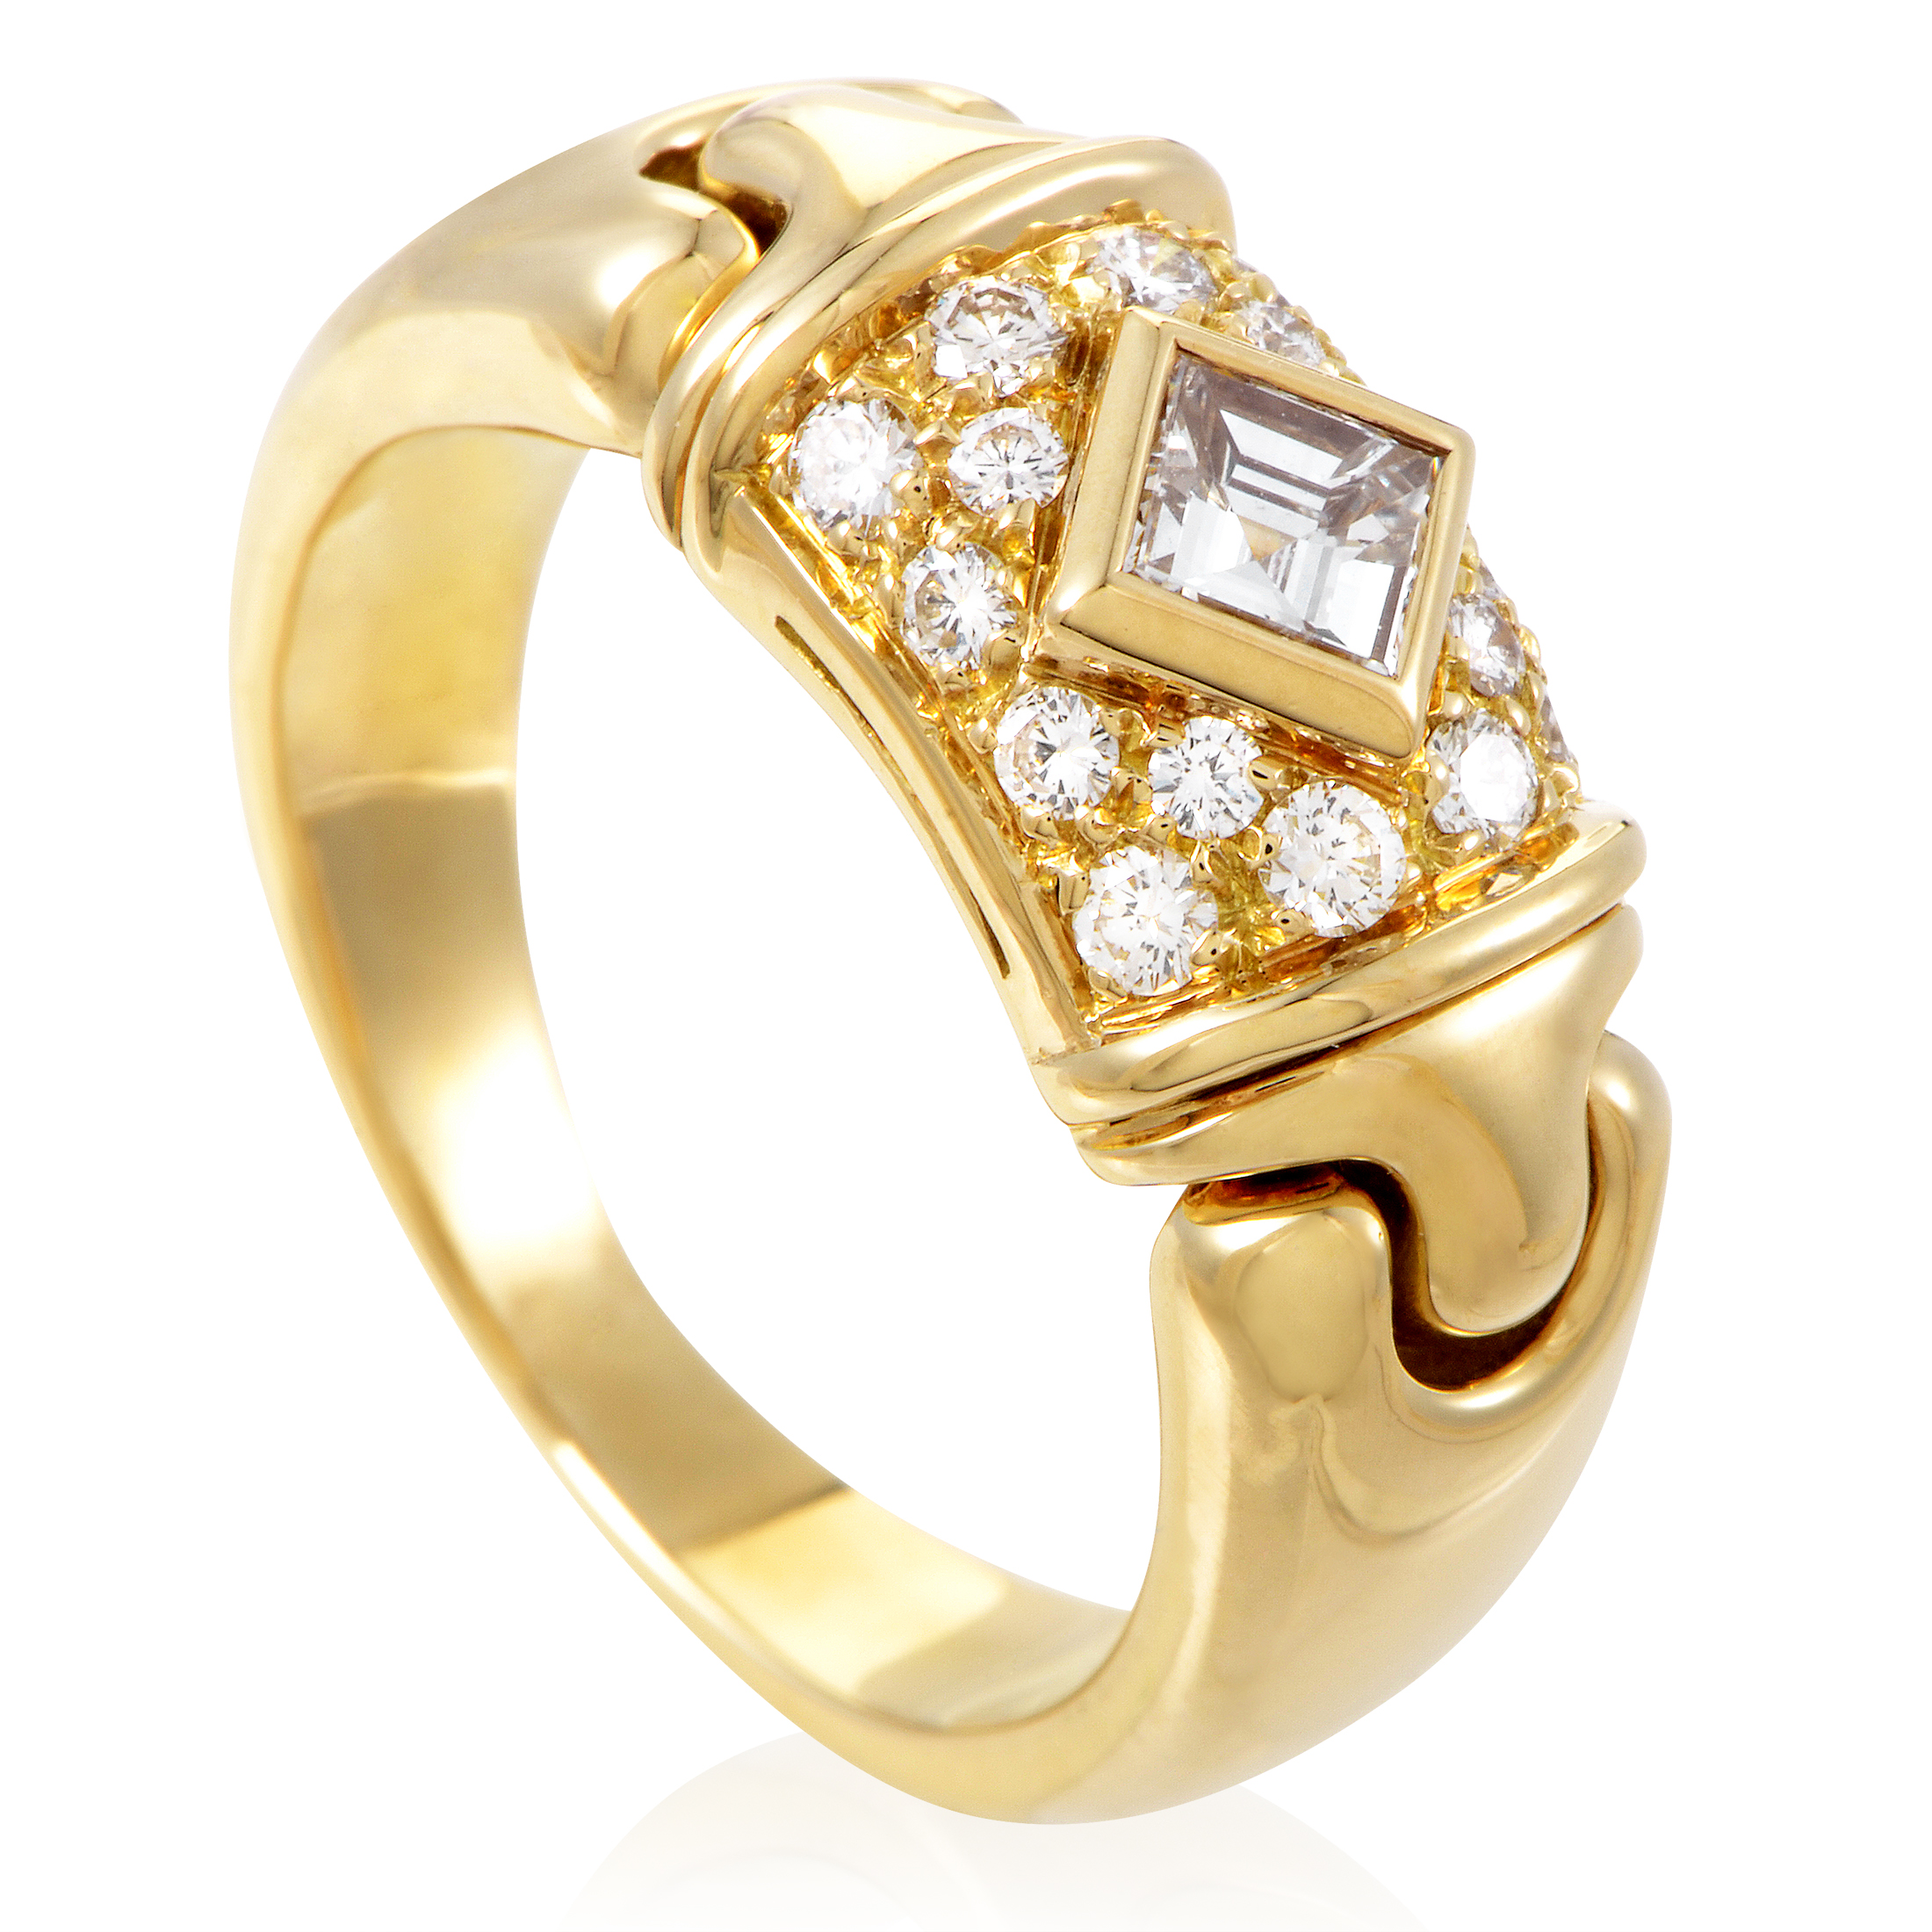 Bvlgari Women's 18K Yellow Gold Diamond Ring